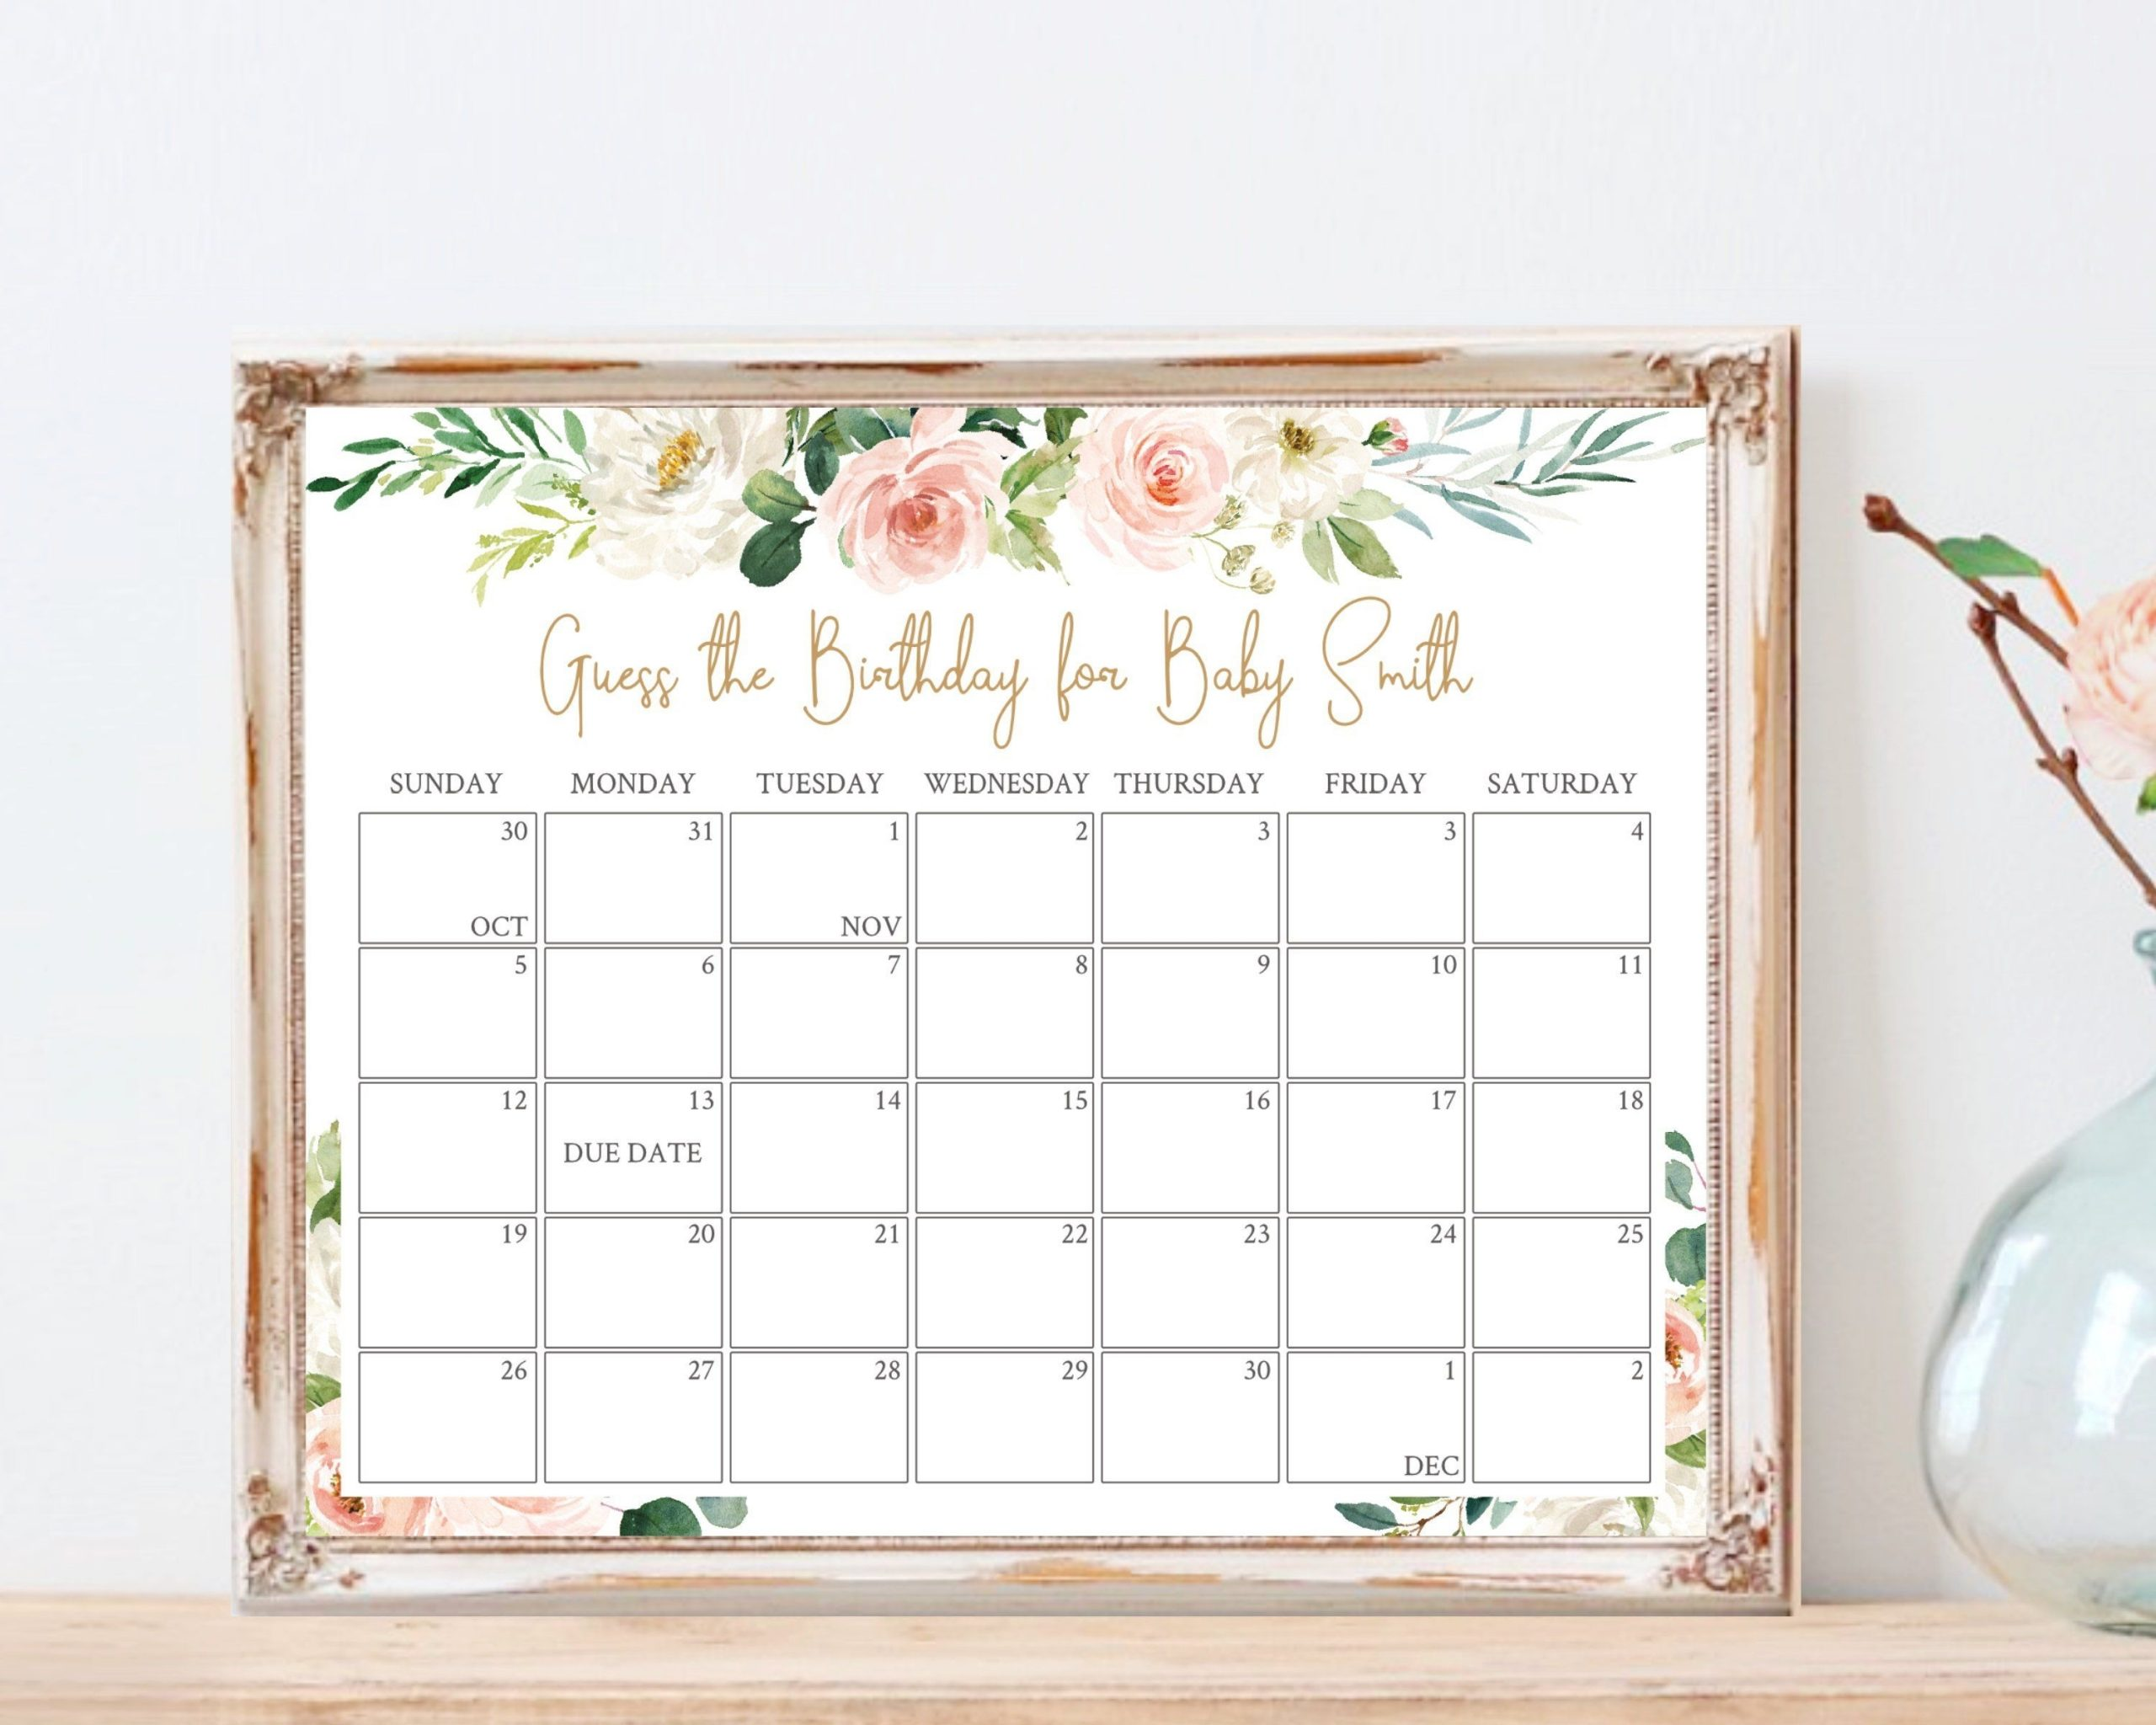 Baby Due Date Calendar Printable Game Guess Baby Birthday